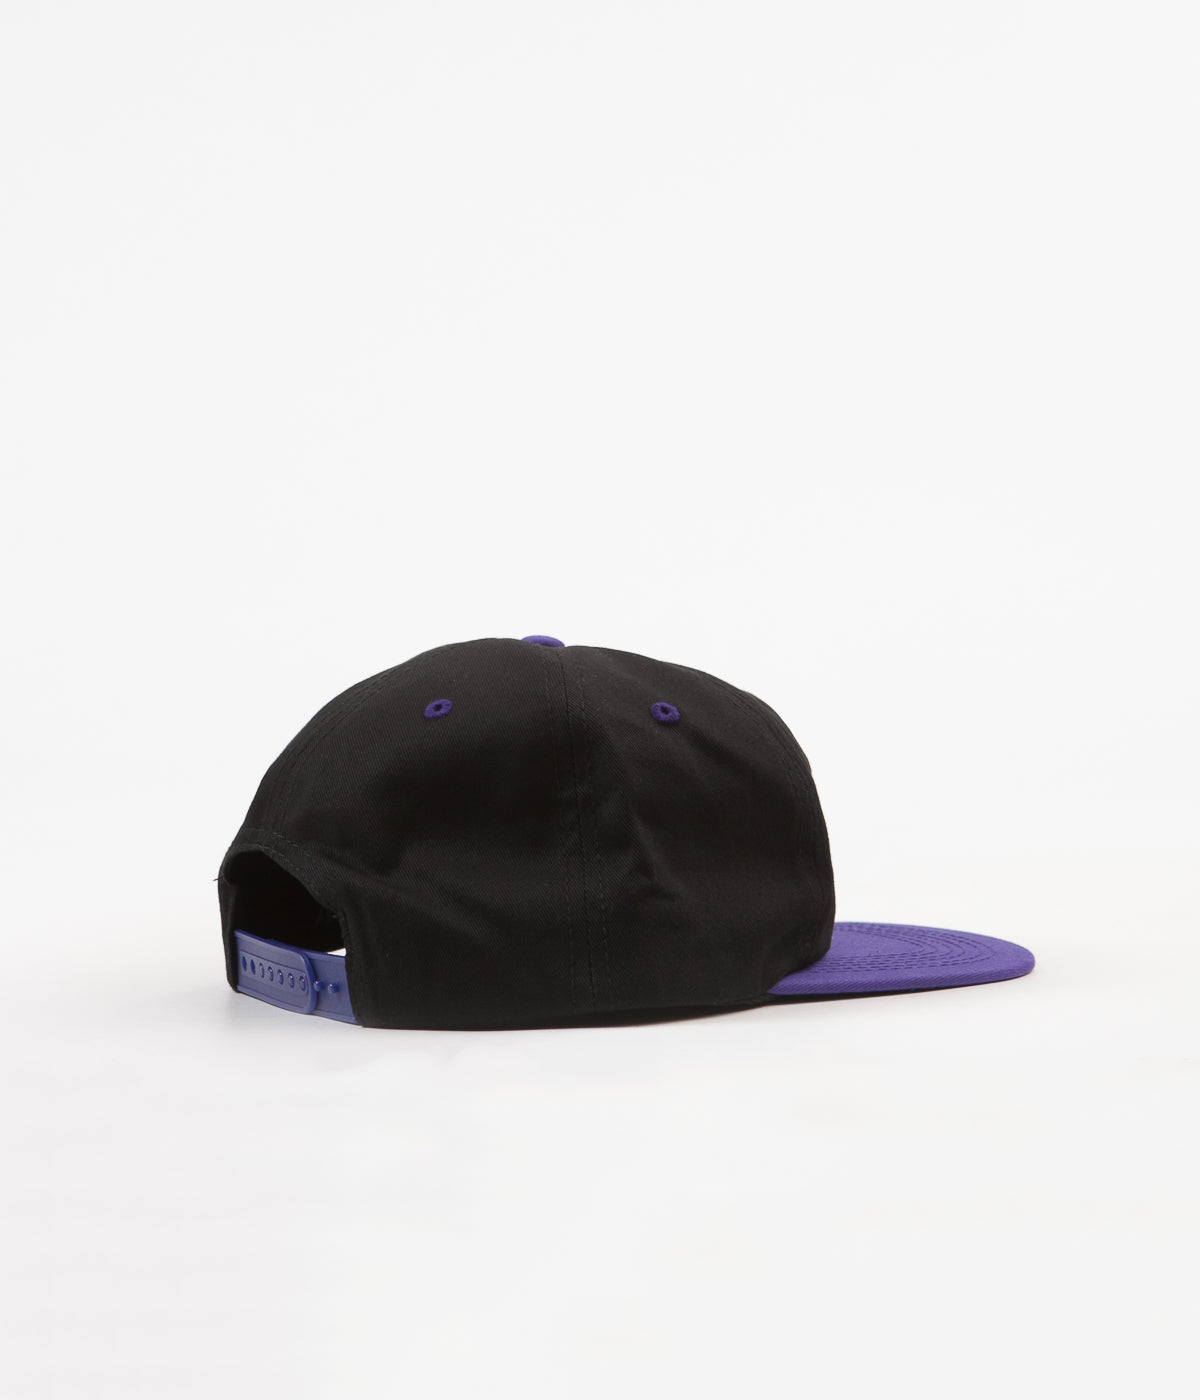 Hockey League 6 Panel Cap - Black / Purple